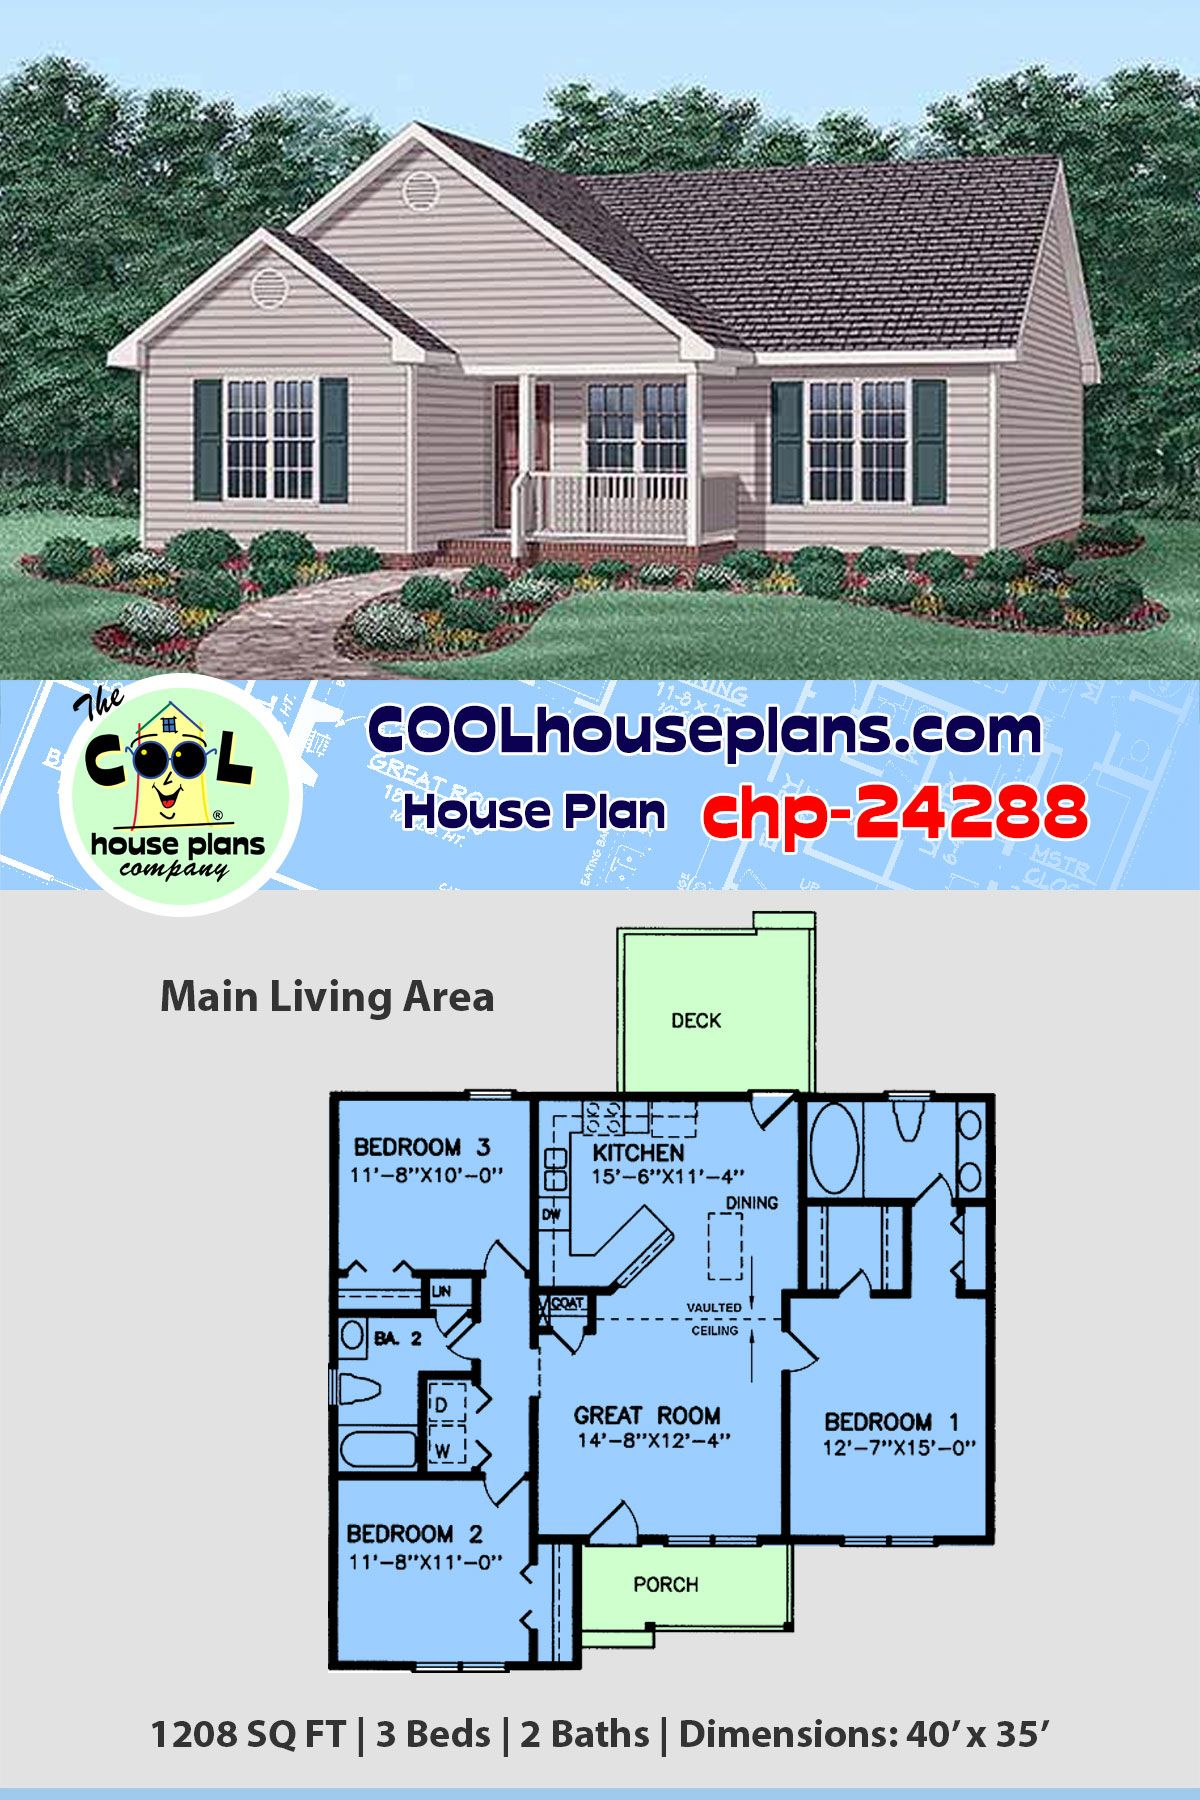 1208 Sq Ft Small Home Plan Chp 24288 At Cool House Plans 3 Beds 2 Baths Affordable Floor Plans House Plans Affordable Floor Plans Best House Plans